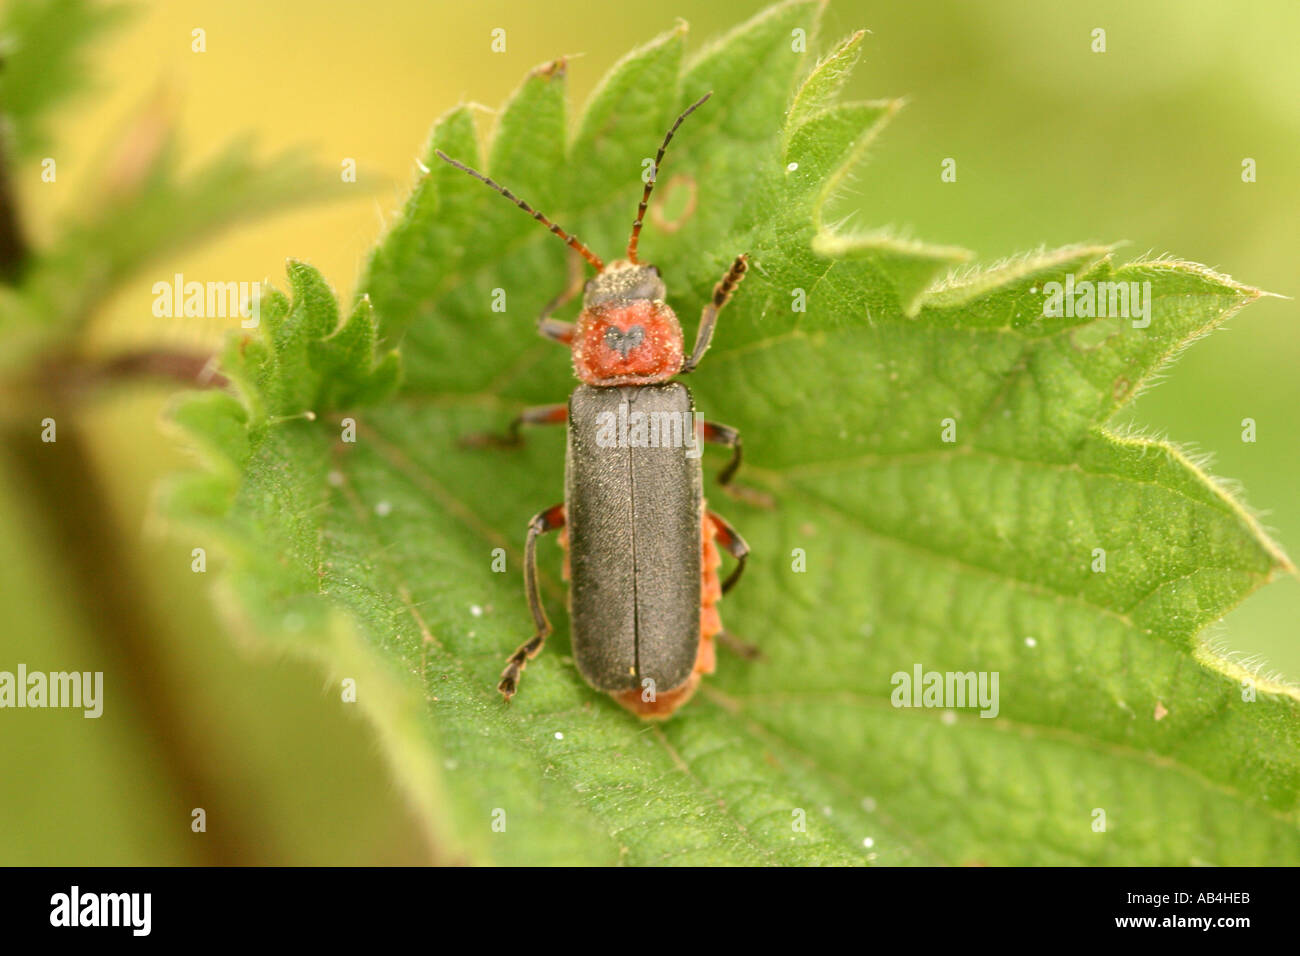 Leather winged or Soldier beetle on nettles Stock Photo